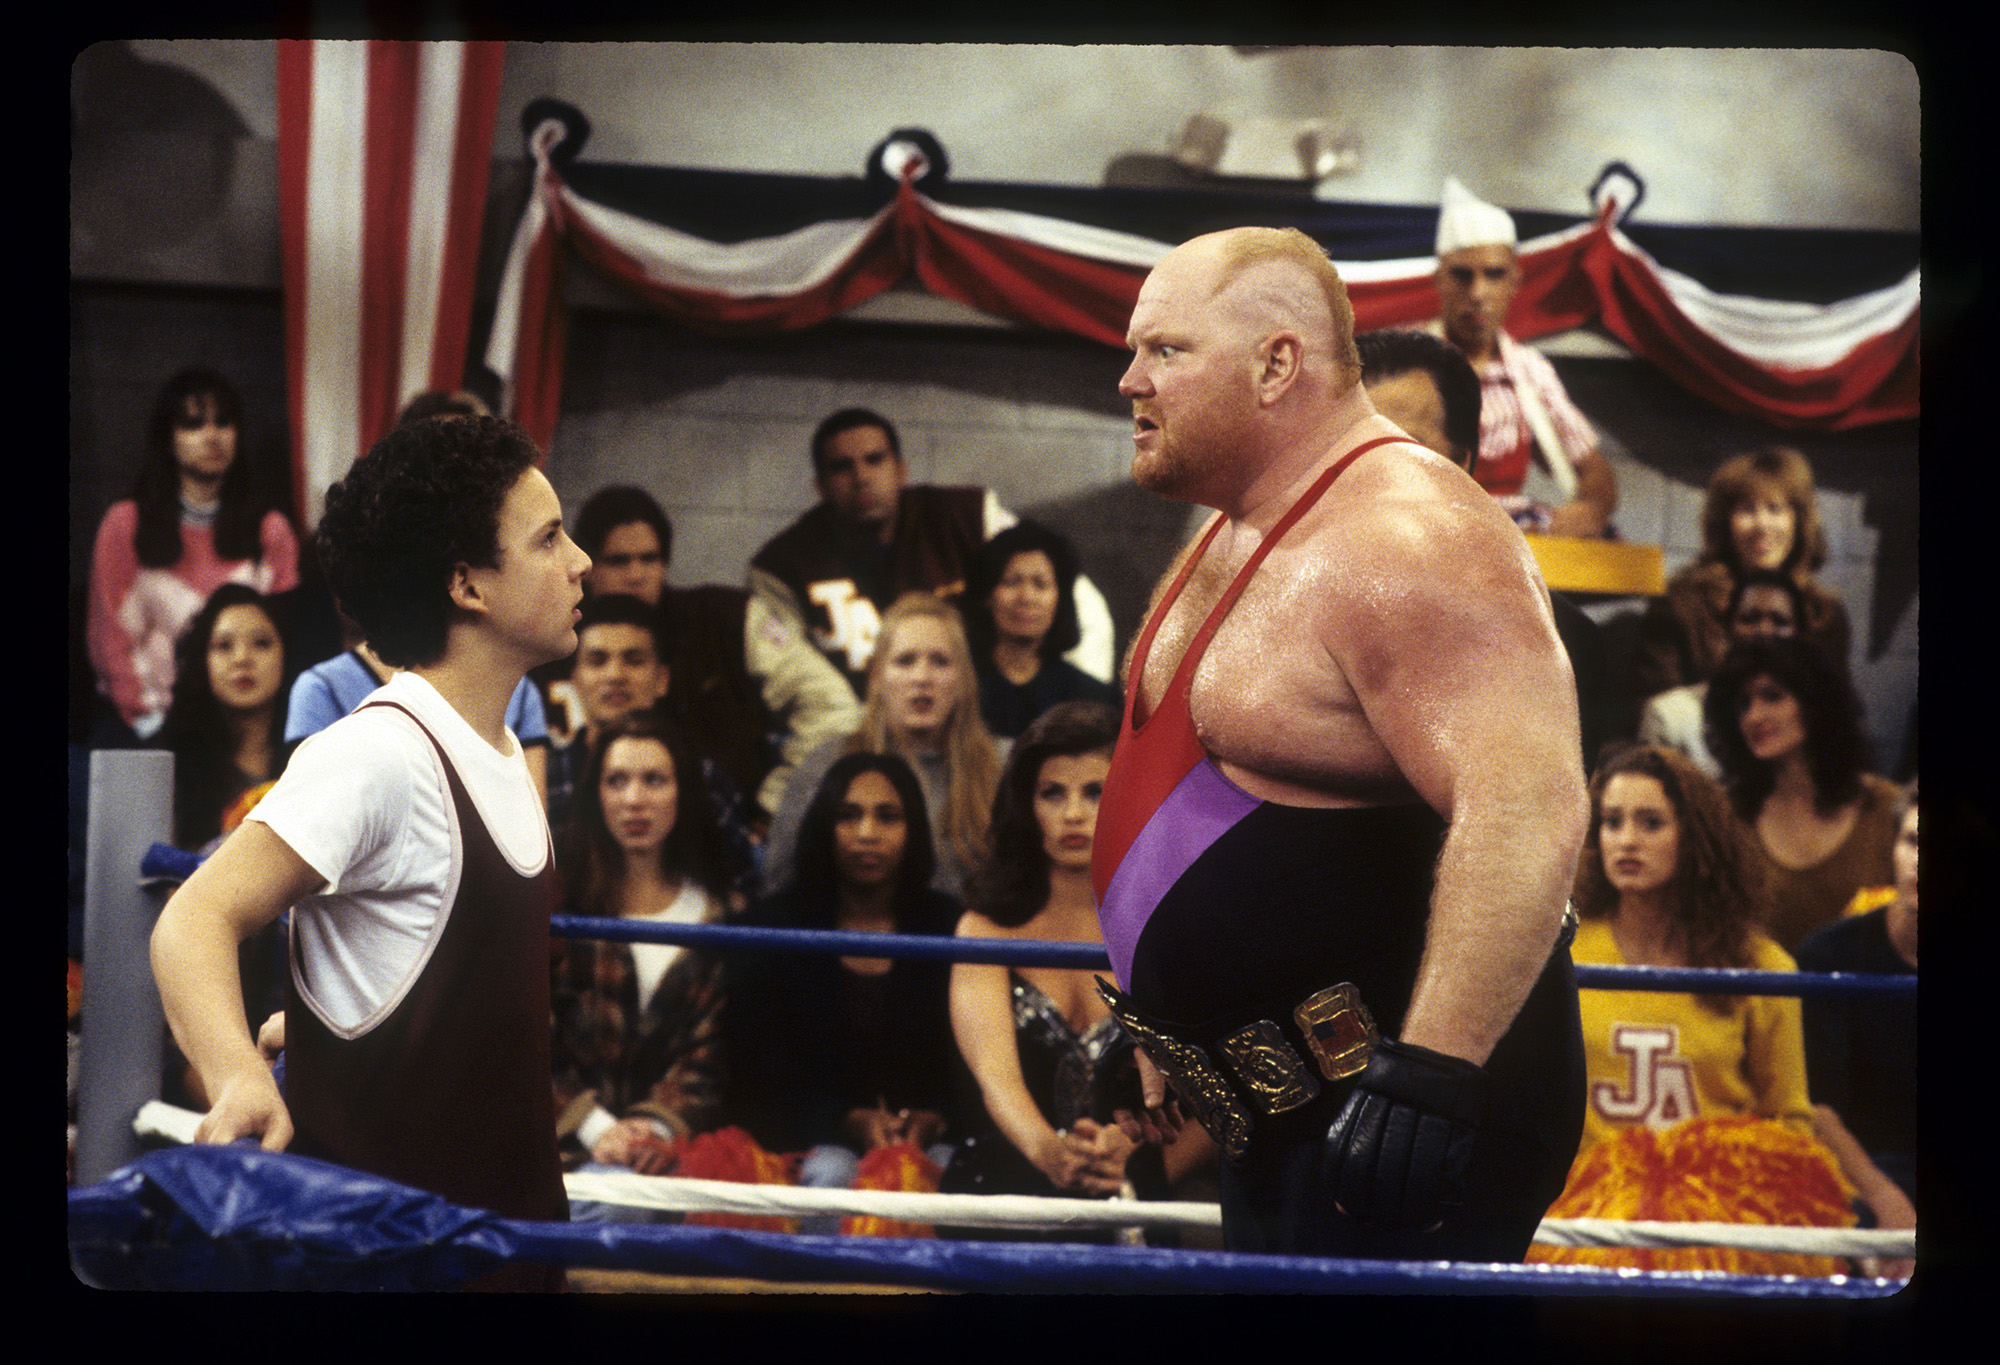 <div class='meta'><div class='origin-logo' data-origin='none'></div><span class='caption-text' data-credit='ABC Photo Archives/ABC via Getty Images'>Wrestler Leon White, known as Vader, died on June 18, from heart complications, according to his son. In this 1995 photo he is seen filming a scene for &#34;Boy Meets World.&#34;</span></div>